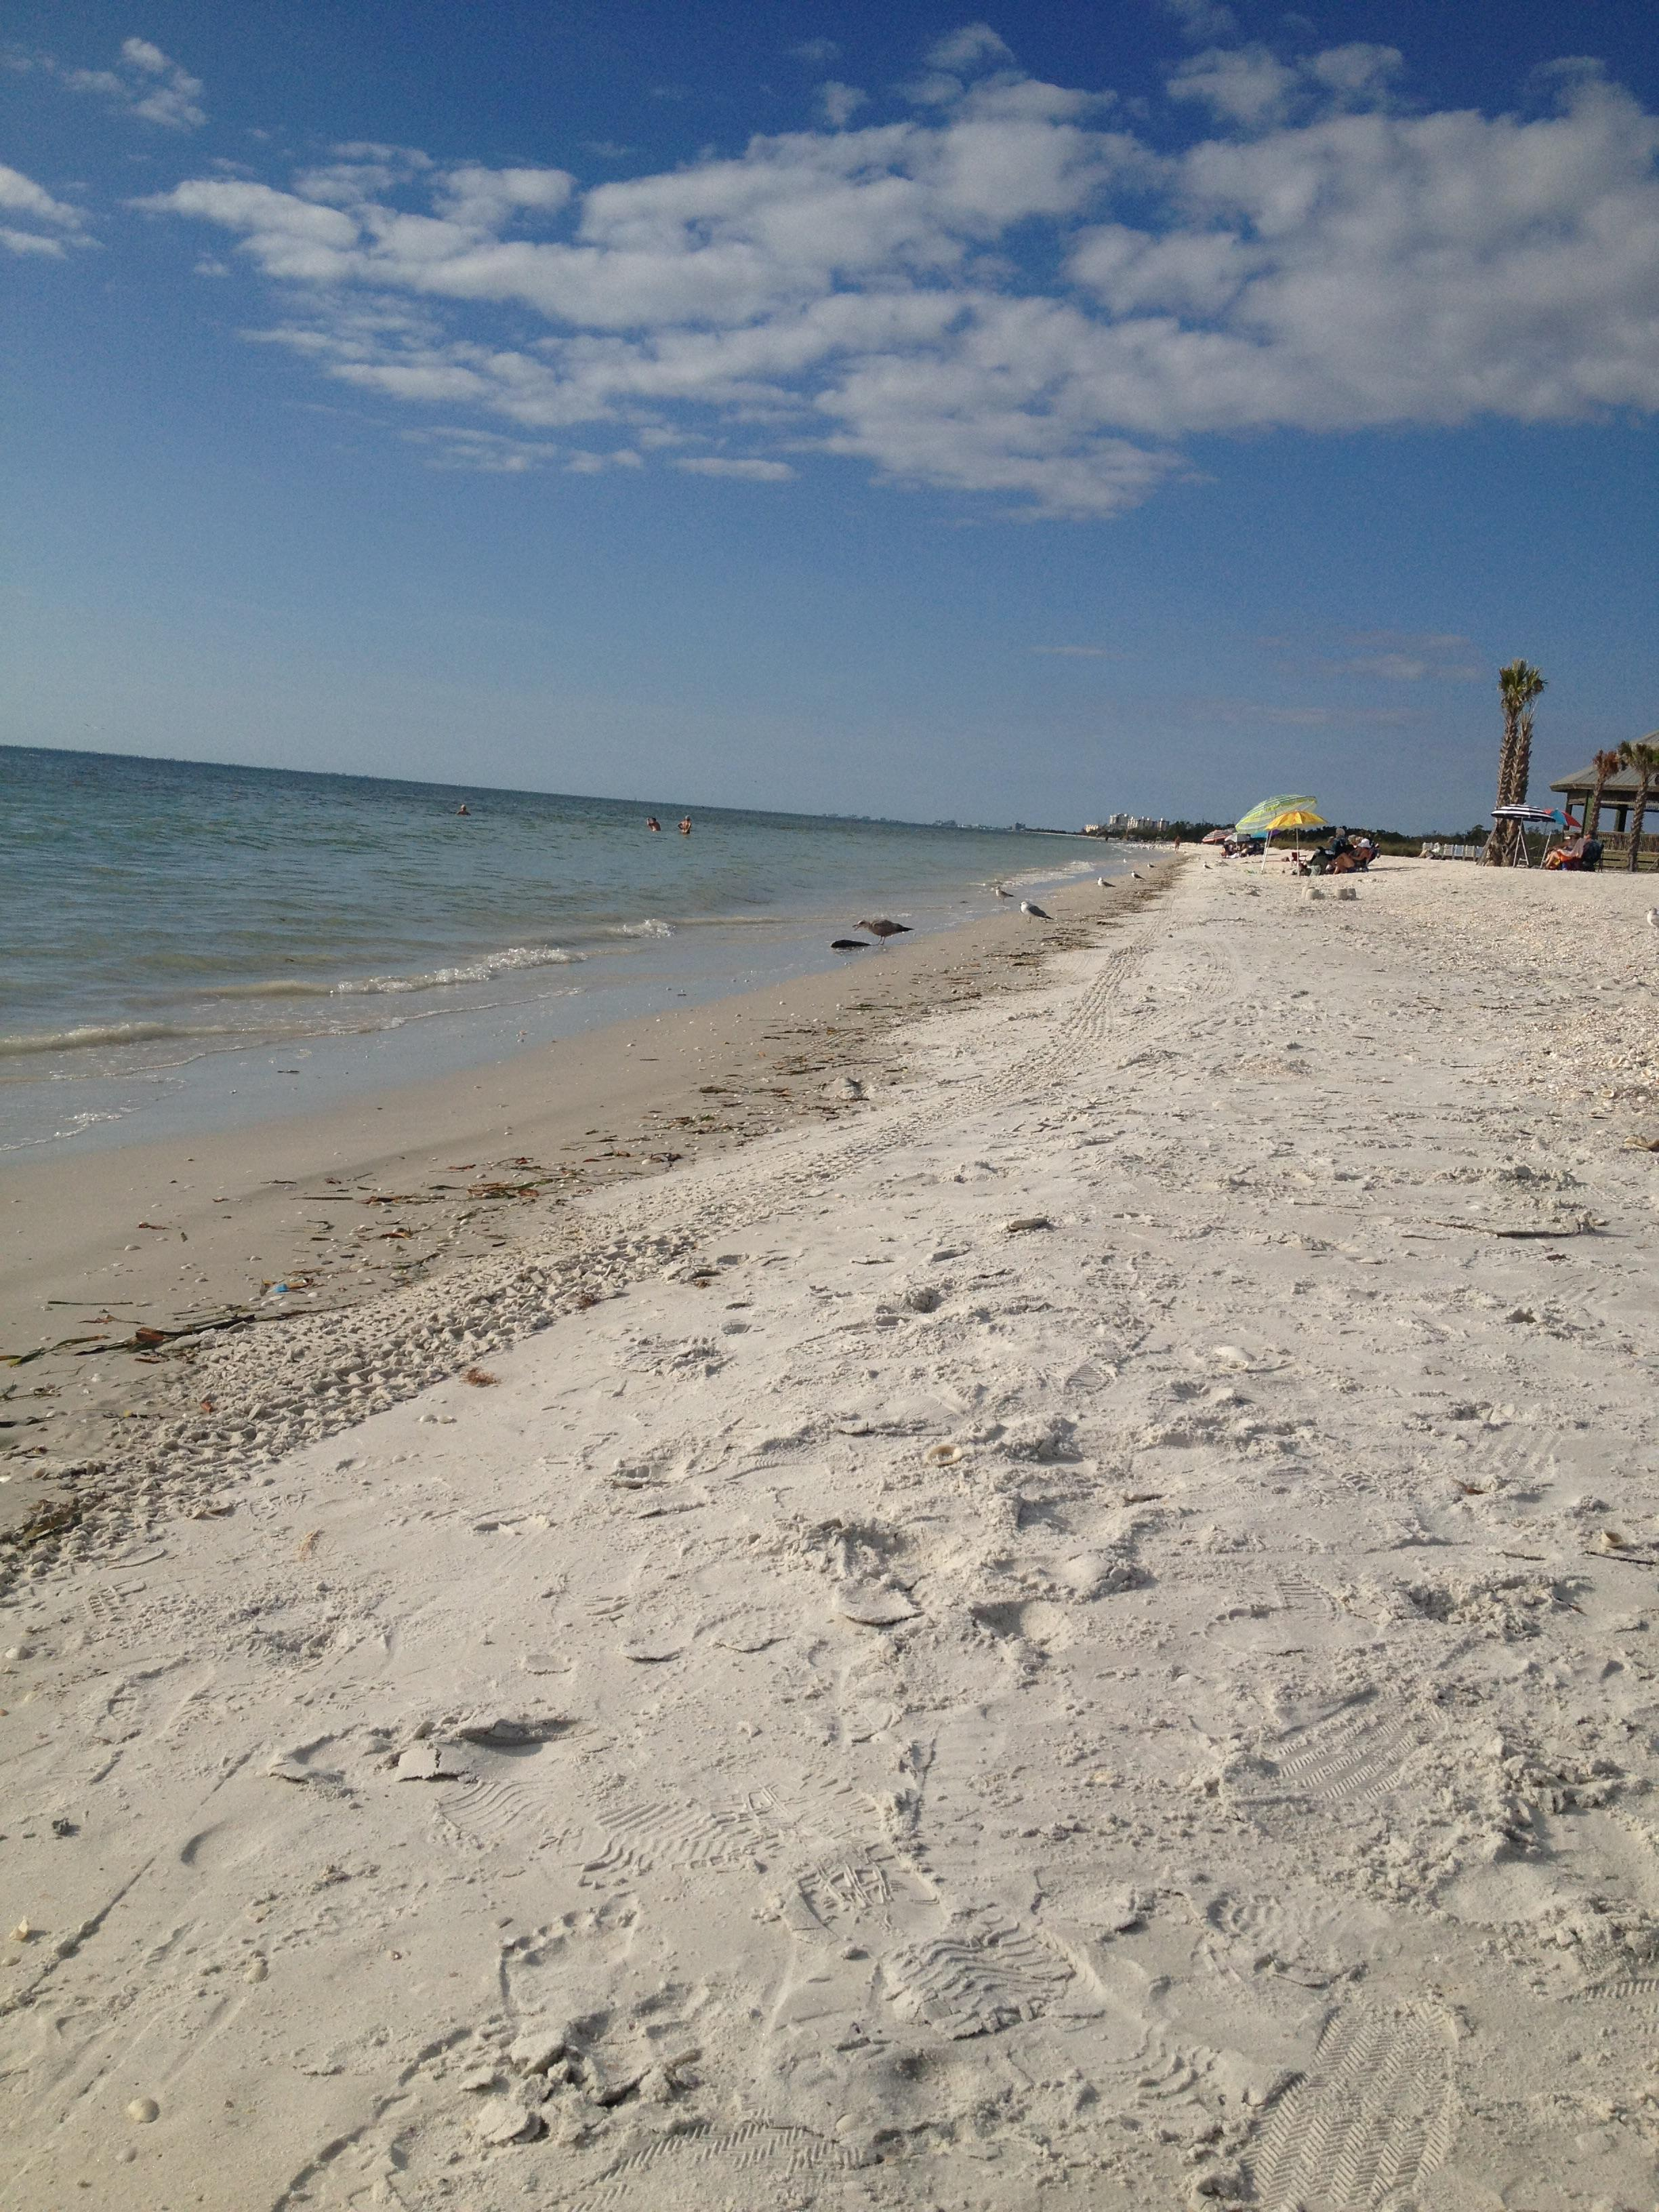 Barefoot beach Bonita springs florida